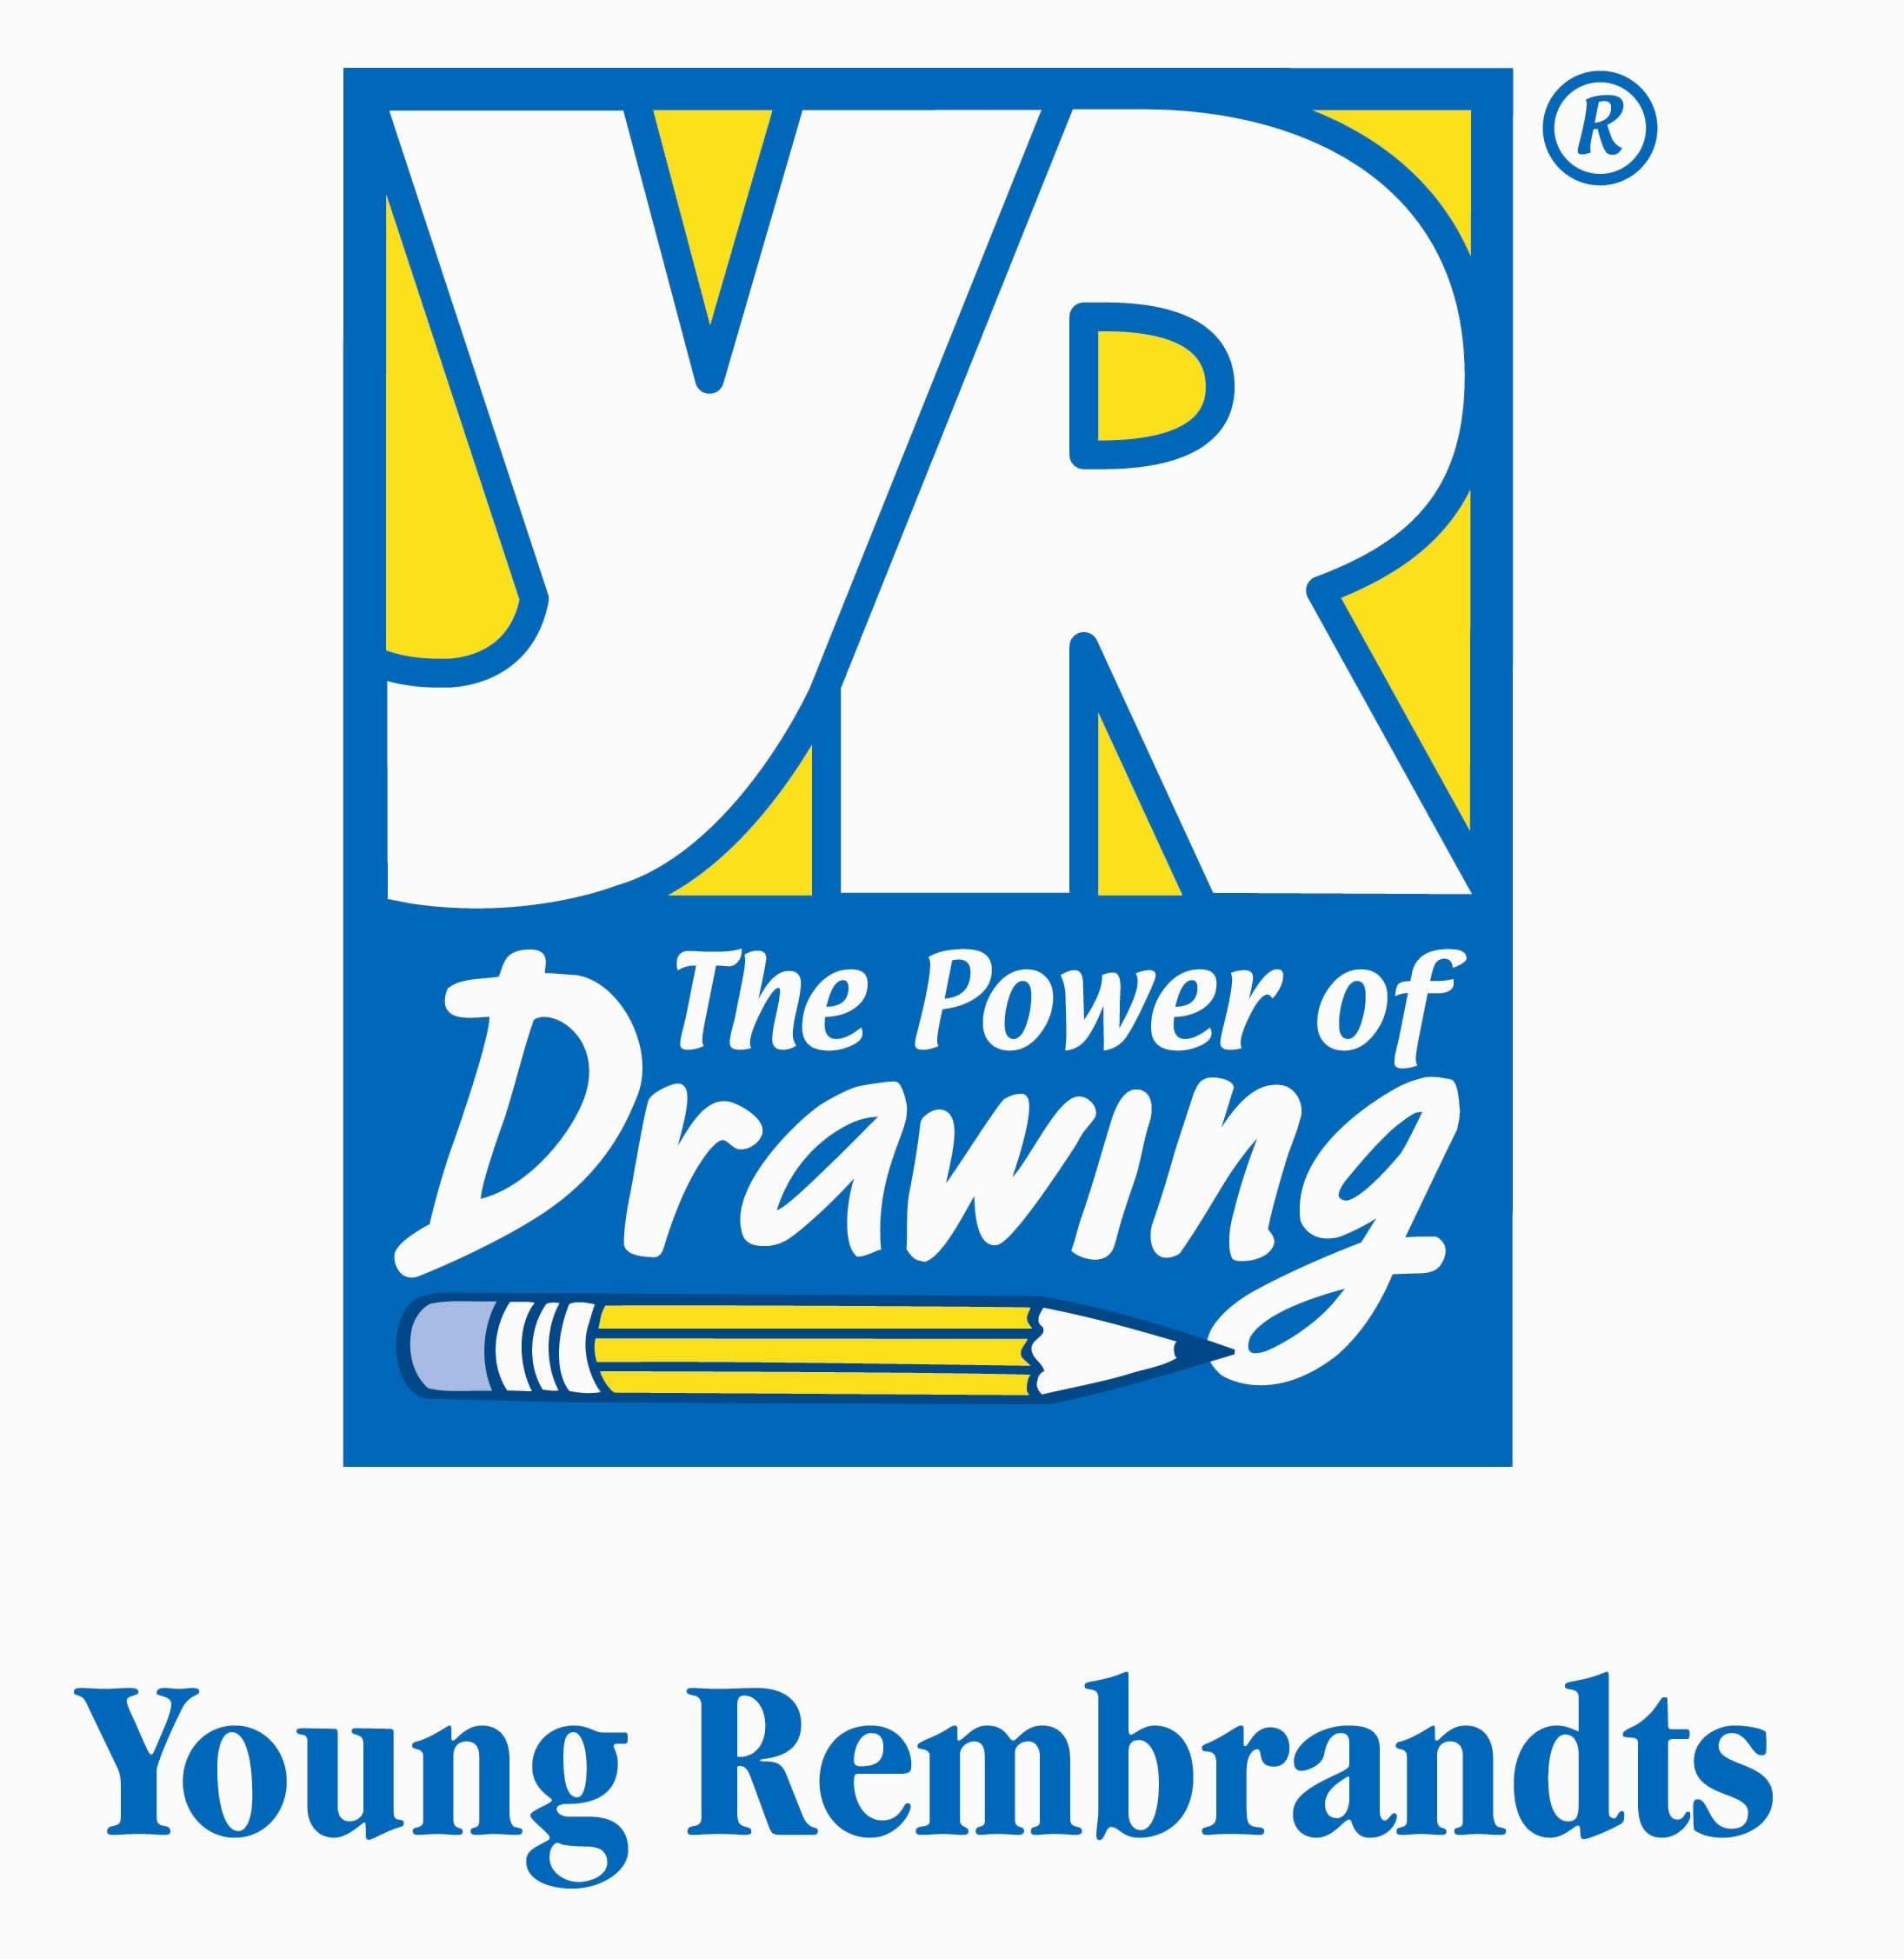 https://www.youngrembrandts.com/